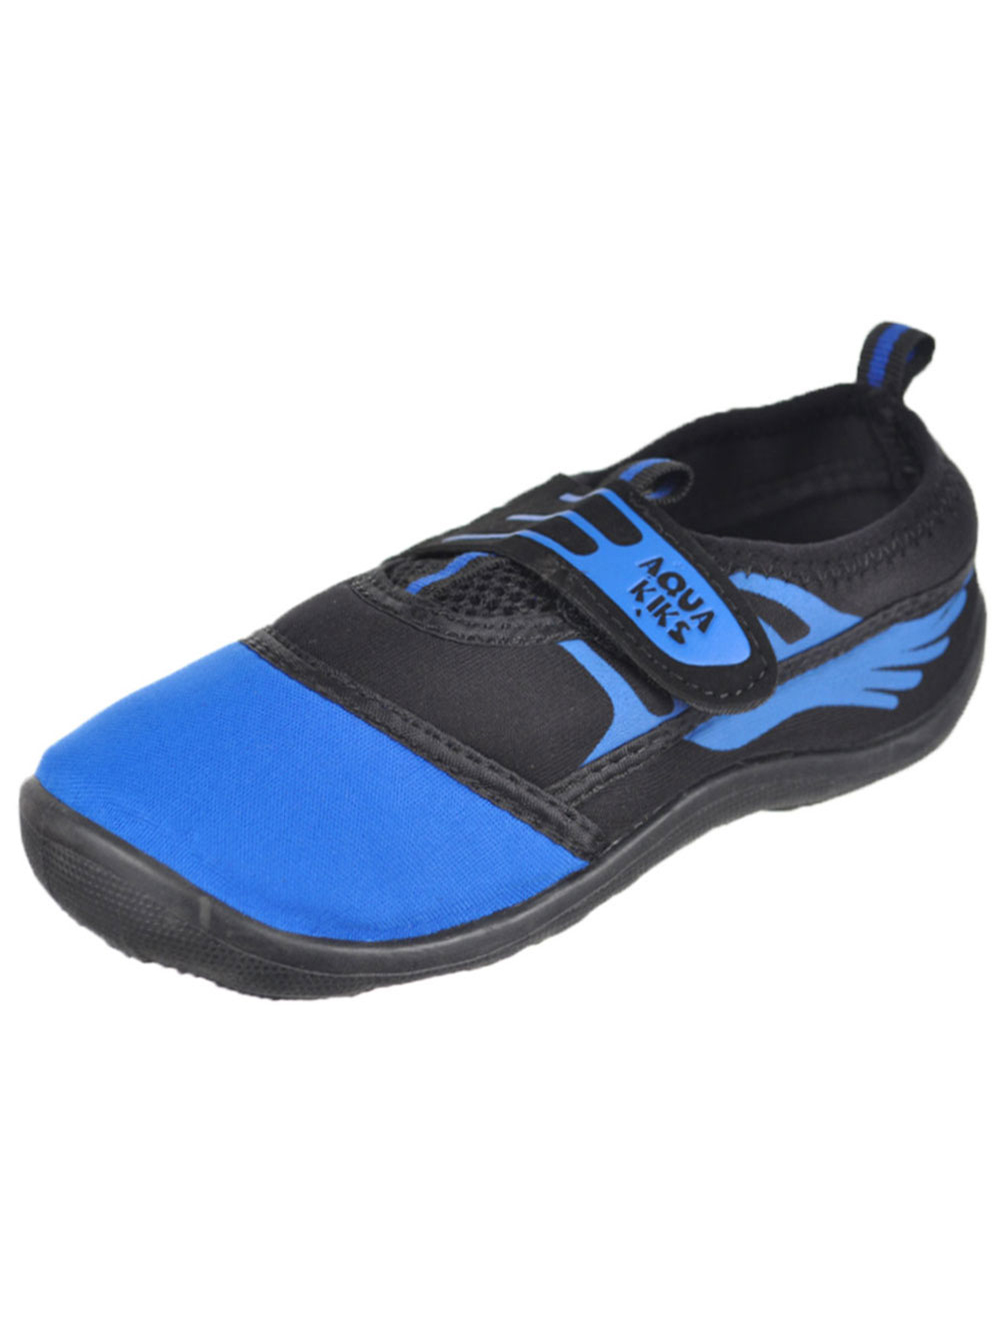 "Aquakiks Boys' ""Mesh Vamp"" Water Shoes (Toddler Sizes 11 – 12) - CookiesKids.com"